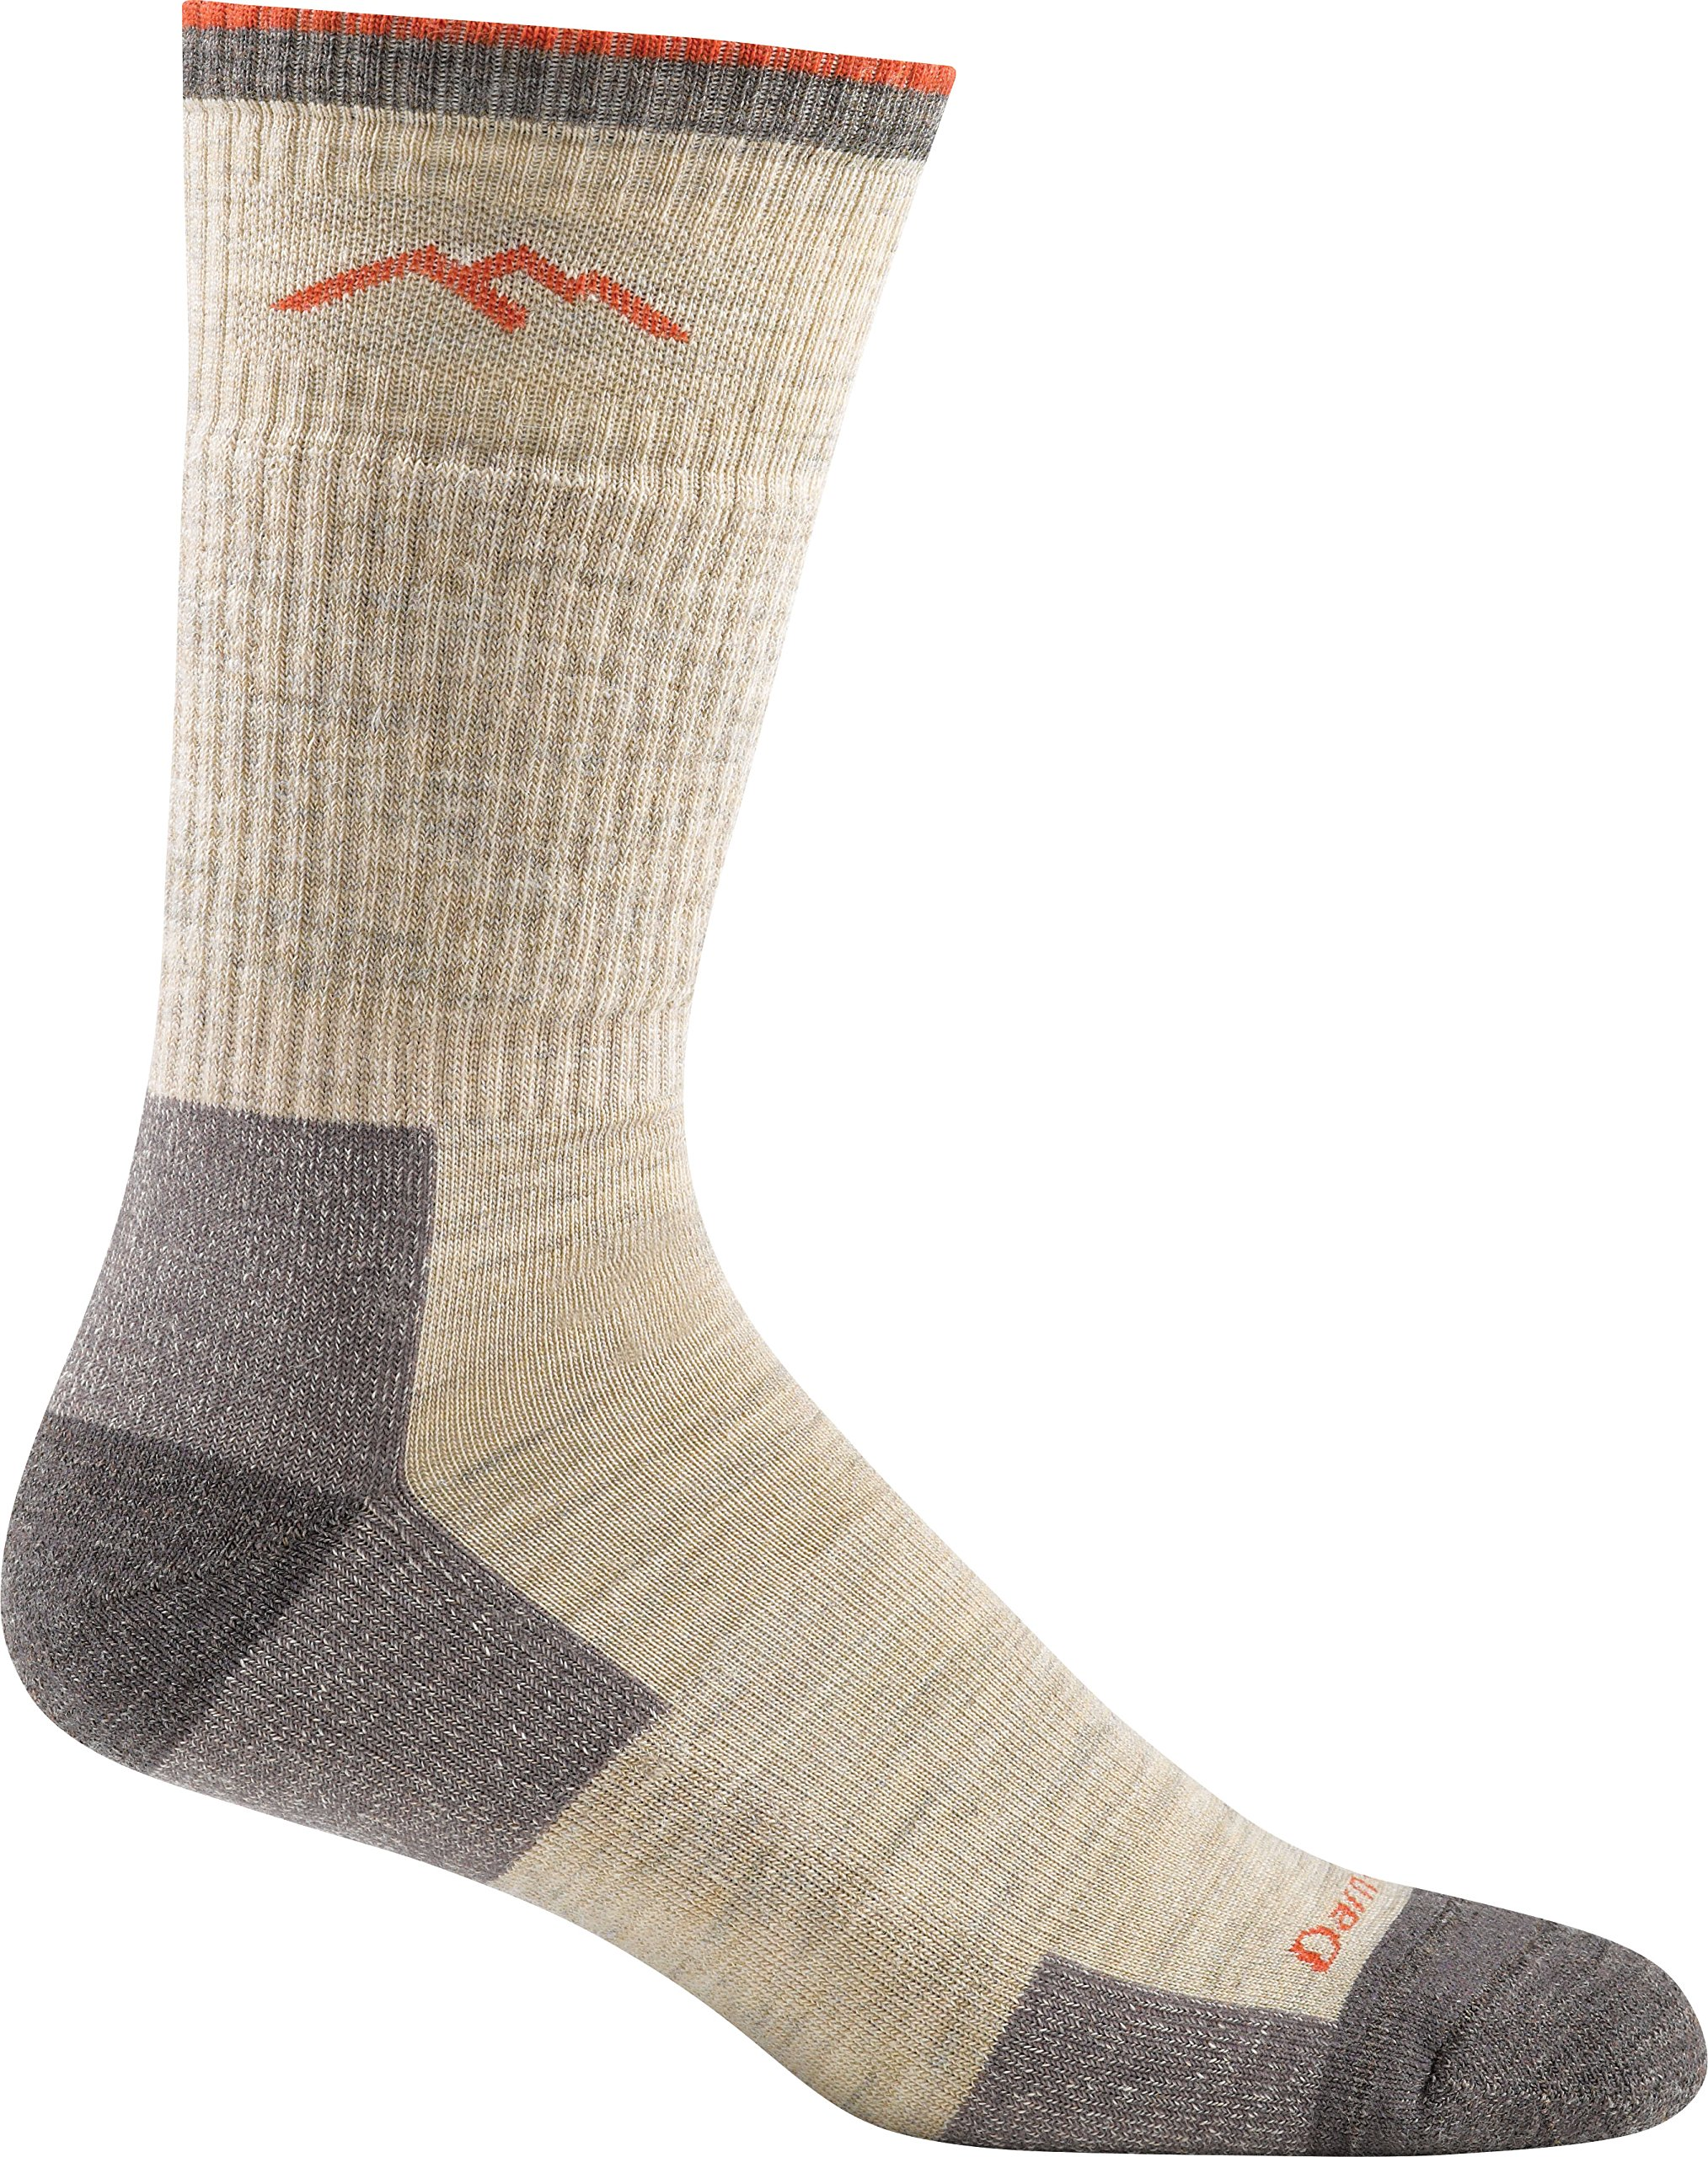 Darn Tough Men's Wool Boot Cushion Sock (Style 1403) - 6 Pack Special Offer (Oatmeal, Large)